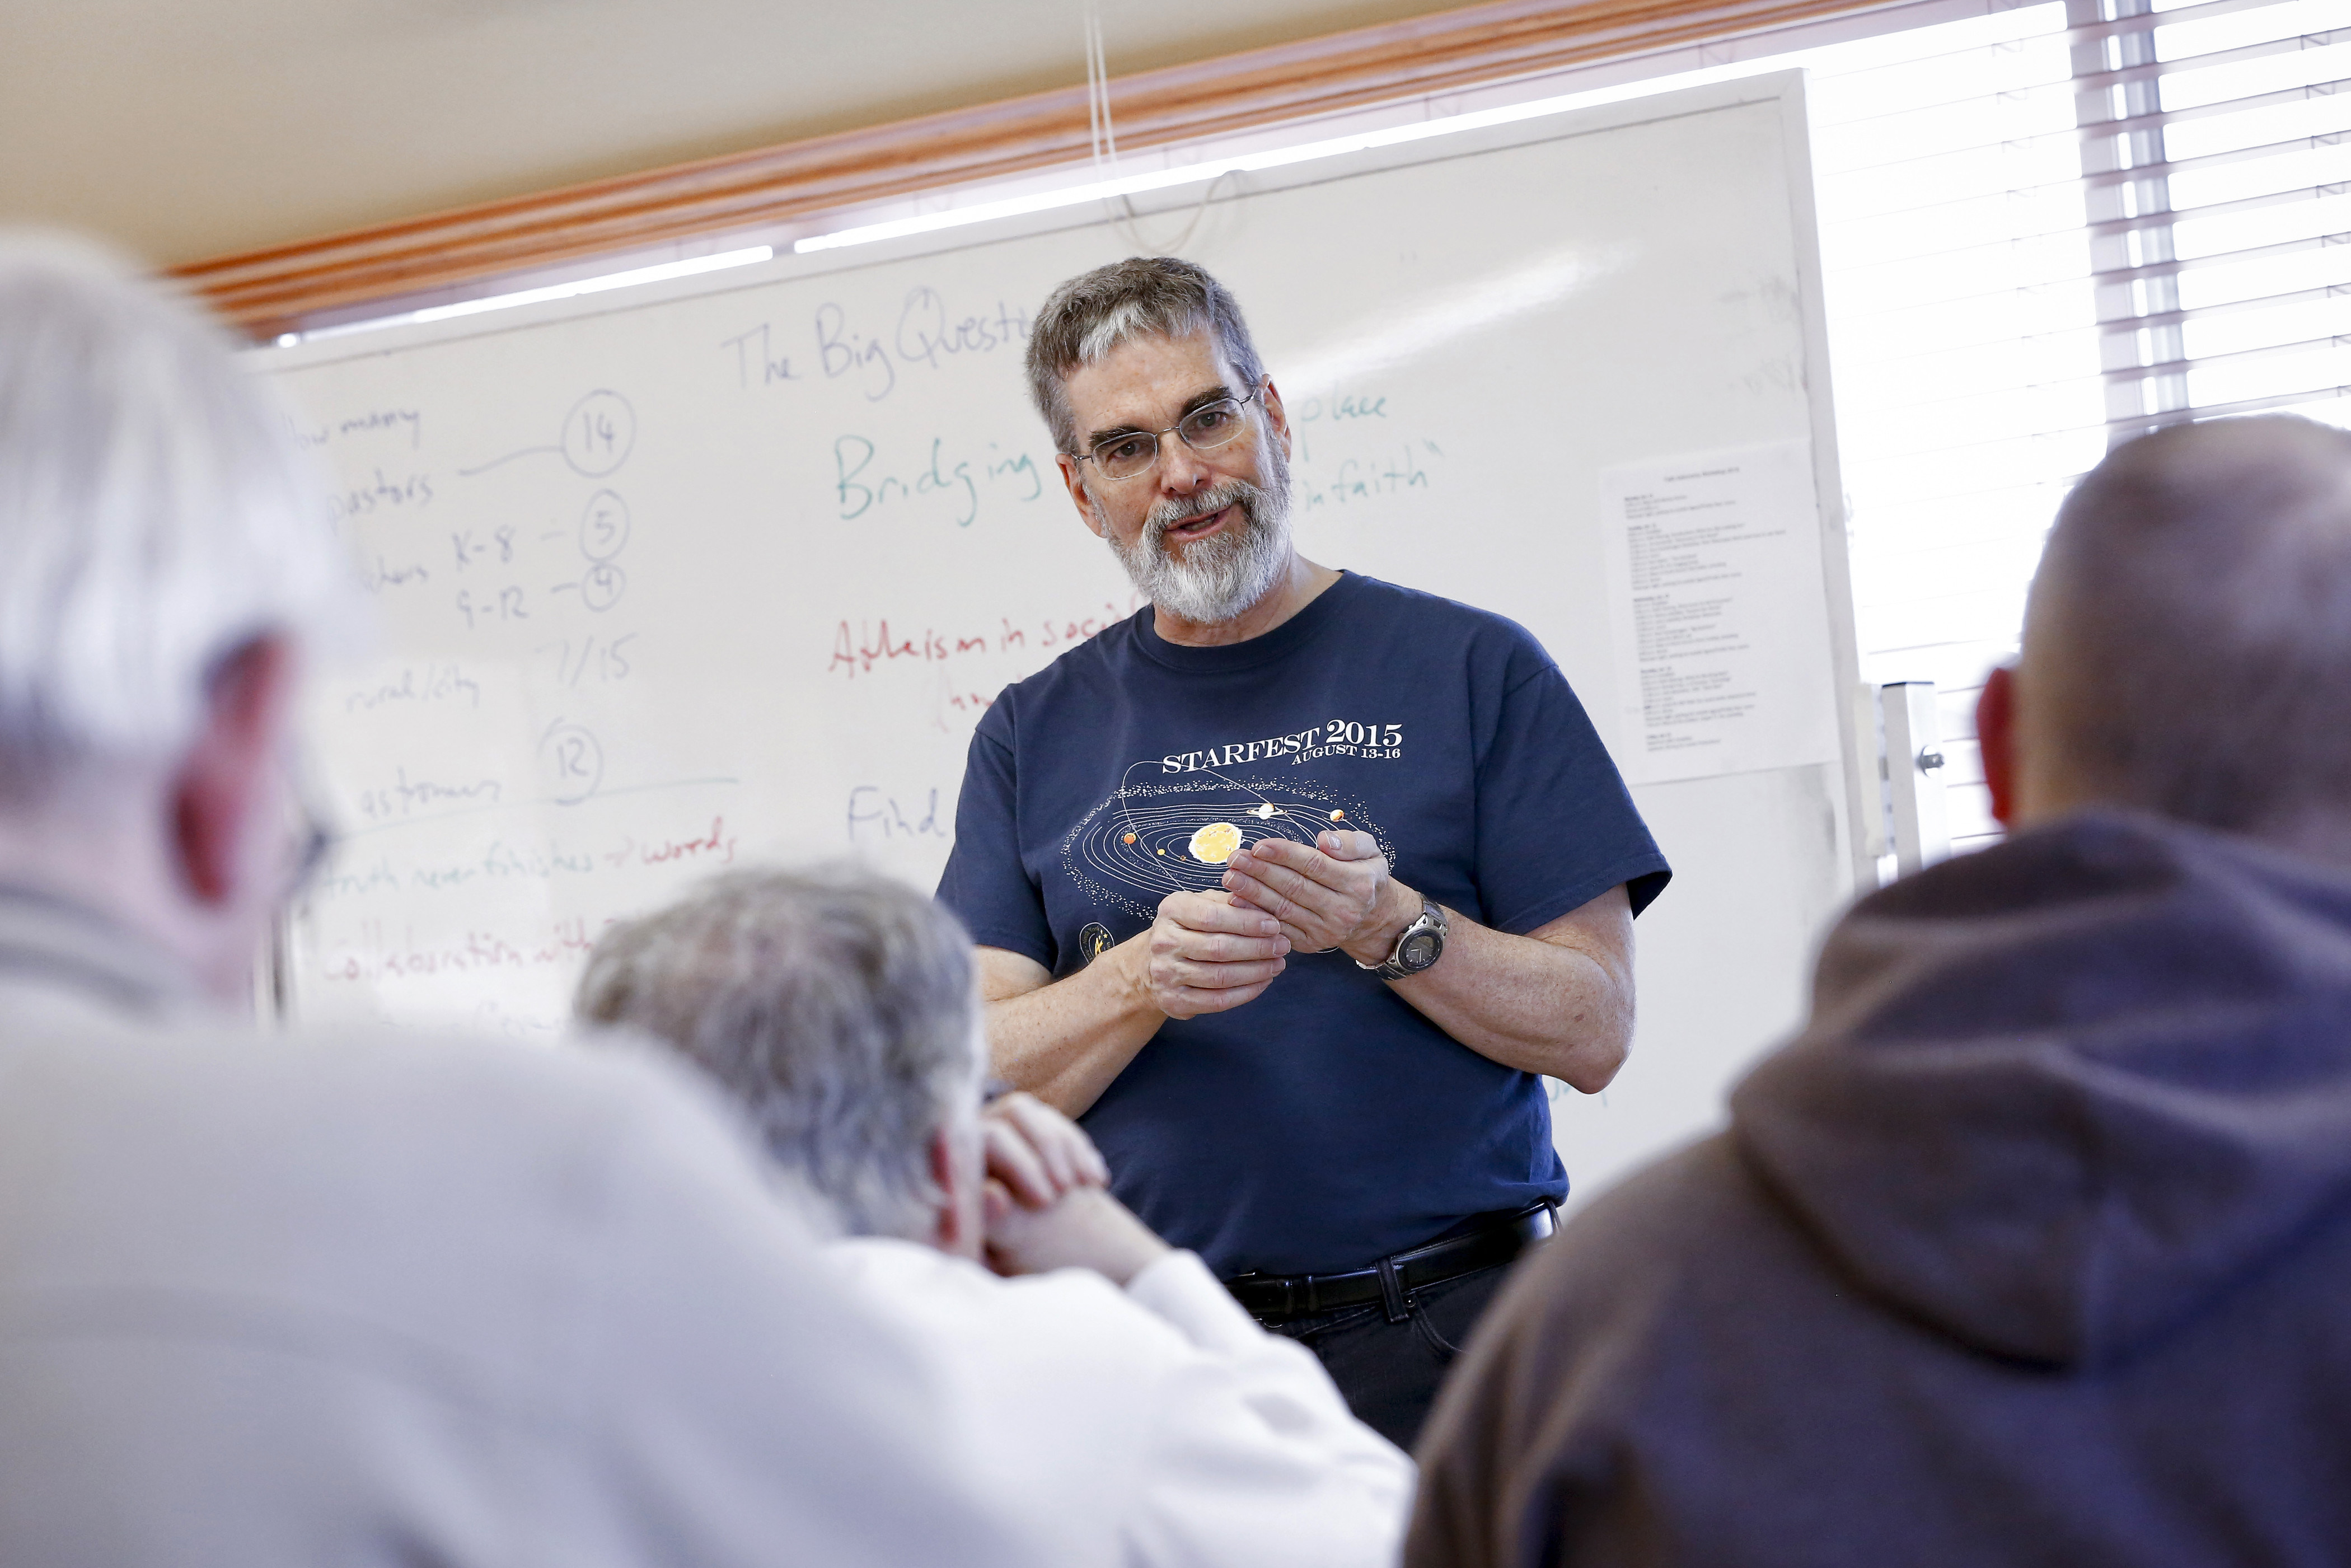 Jesuit Brother Guy Consolmagno, director of the Vatican Observatory, facilitates the Faith and Astronomy Workshop Jan. 13 at the Redemptorist Renewal Center in Tucson, Arizona. (CNS photo/Nancy Wiechec)